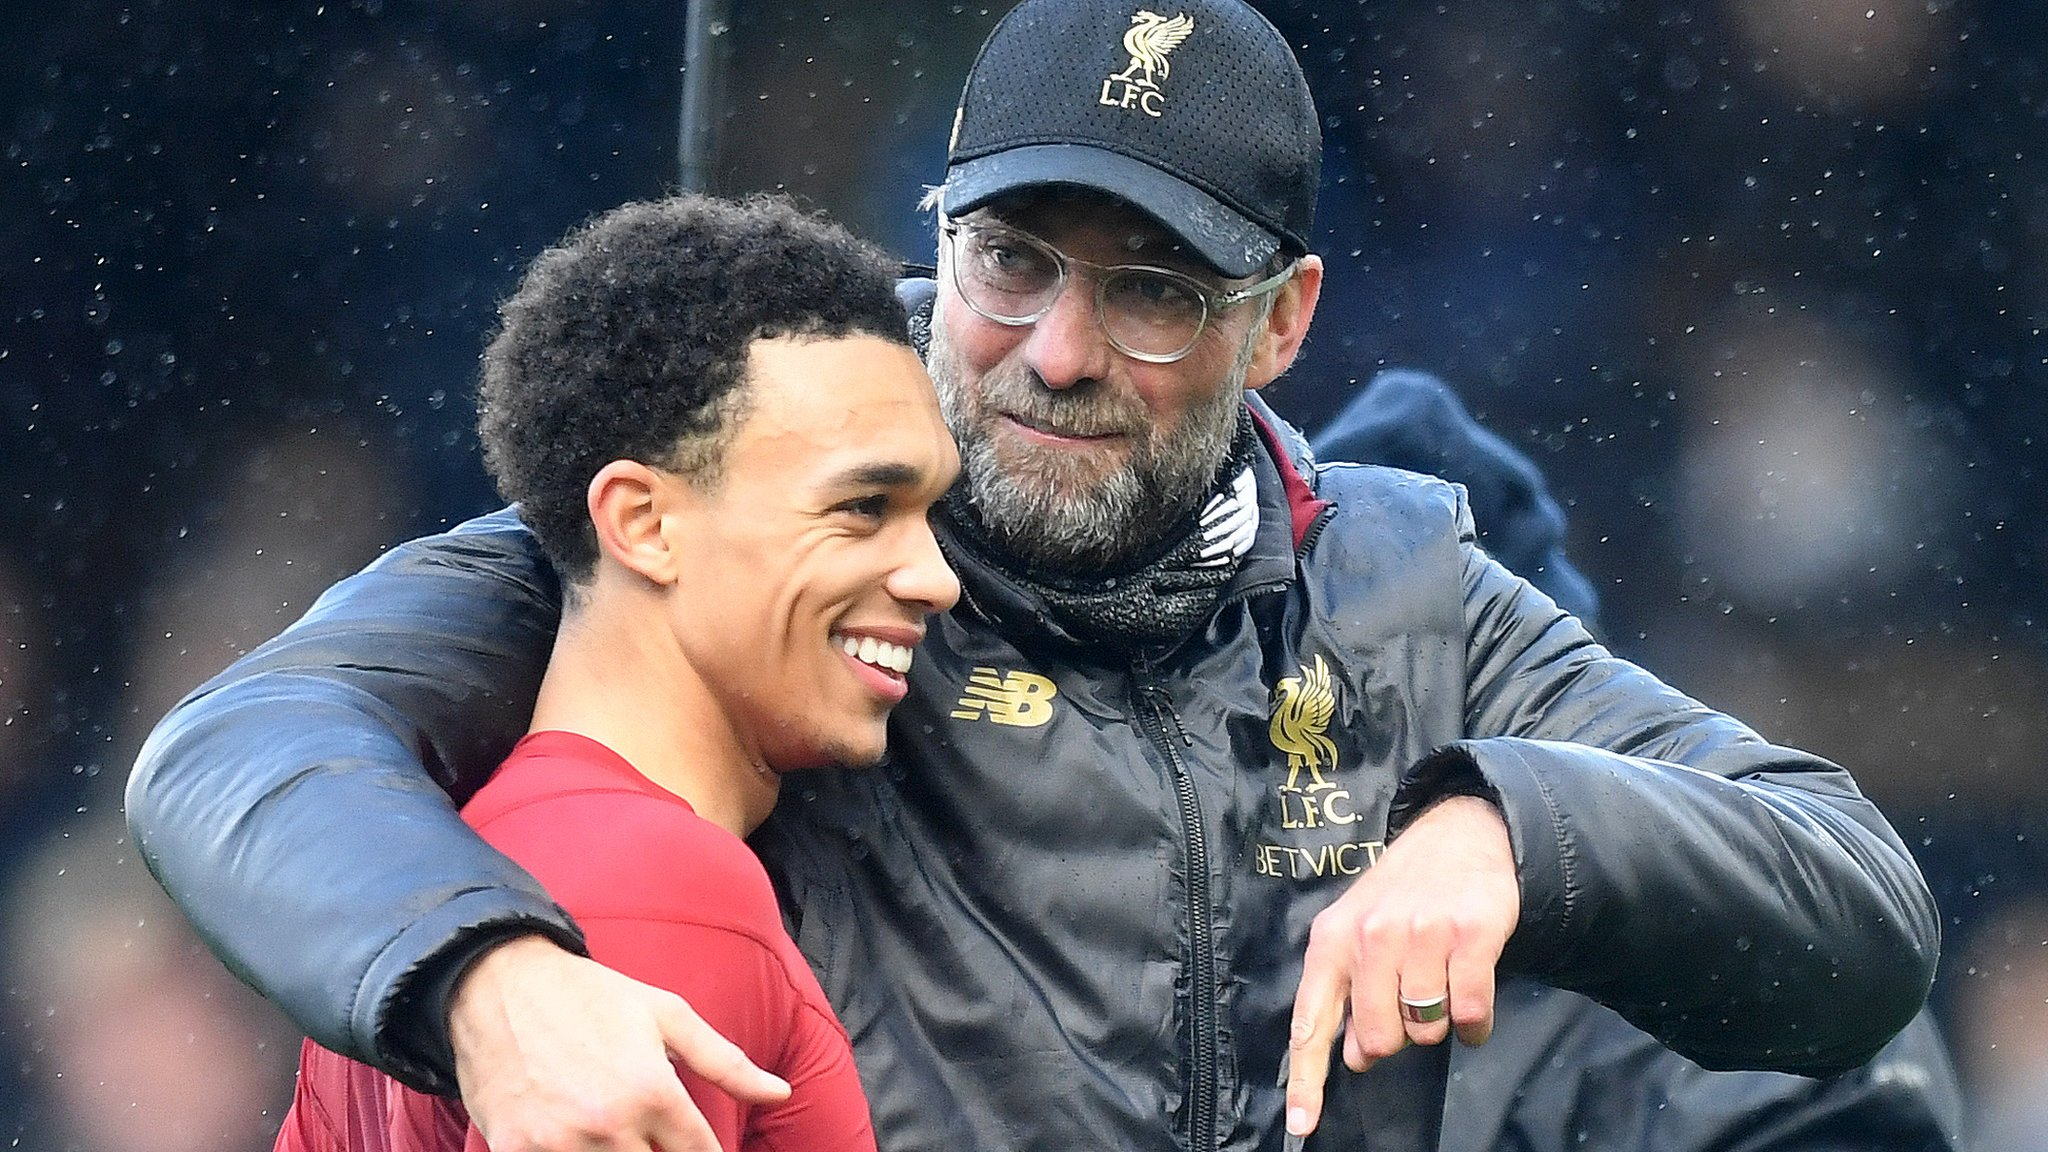 Fulham 1-2 Liverpool: Reds nerve 'not in doubt' after scare - Jurgen Klopp